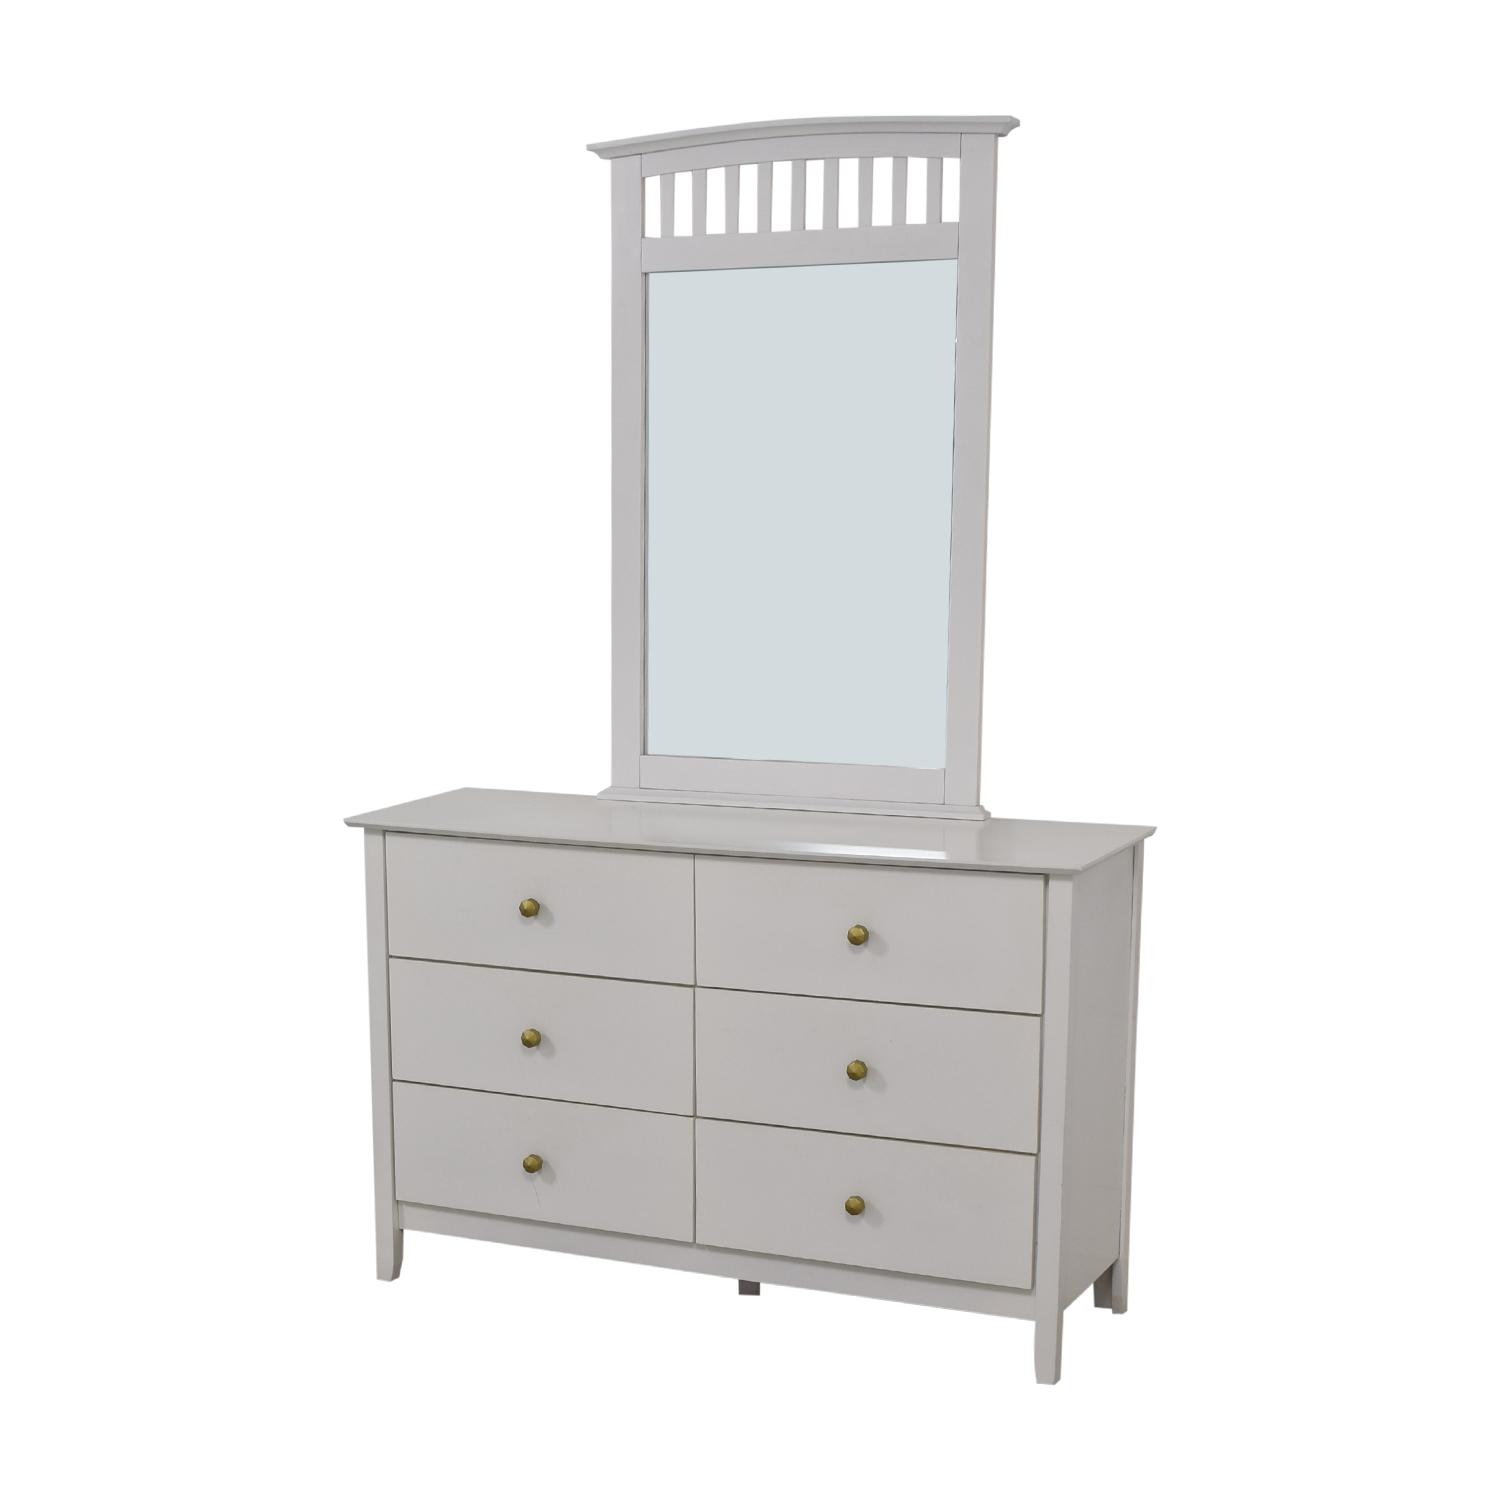 Bob's Discount Furniture Bob's Discount Furniture White Six-Drawer Dresser with Mirror second hand